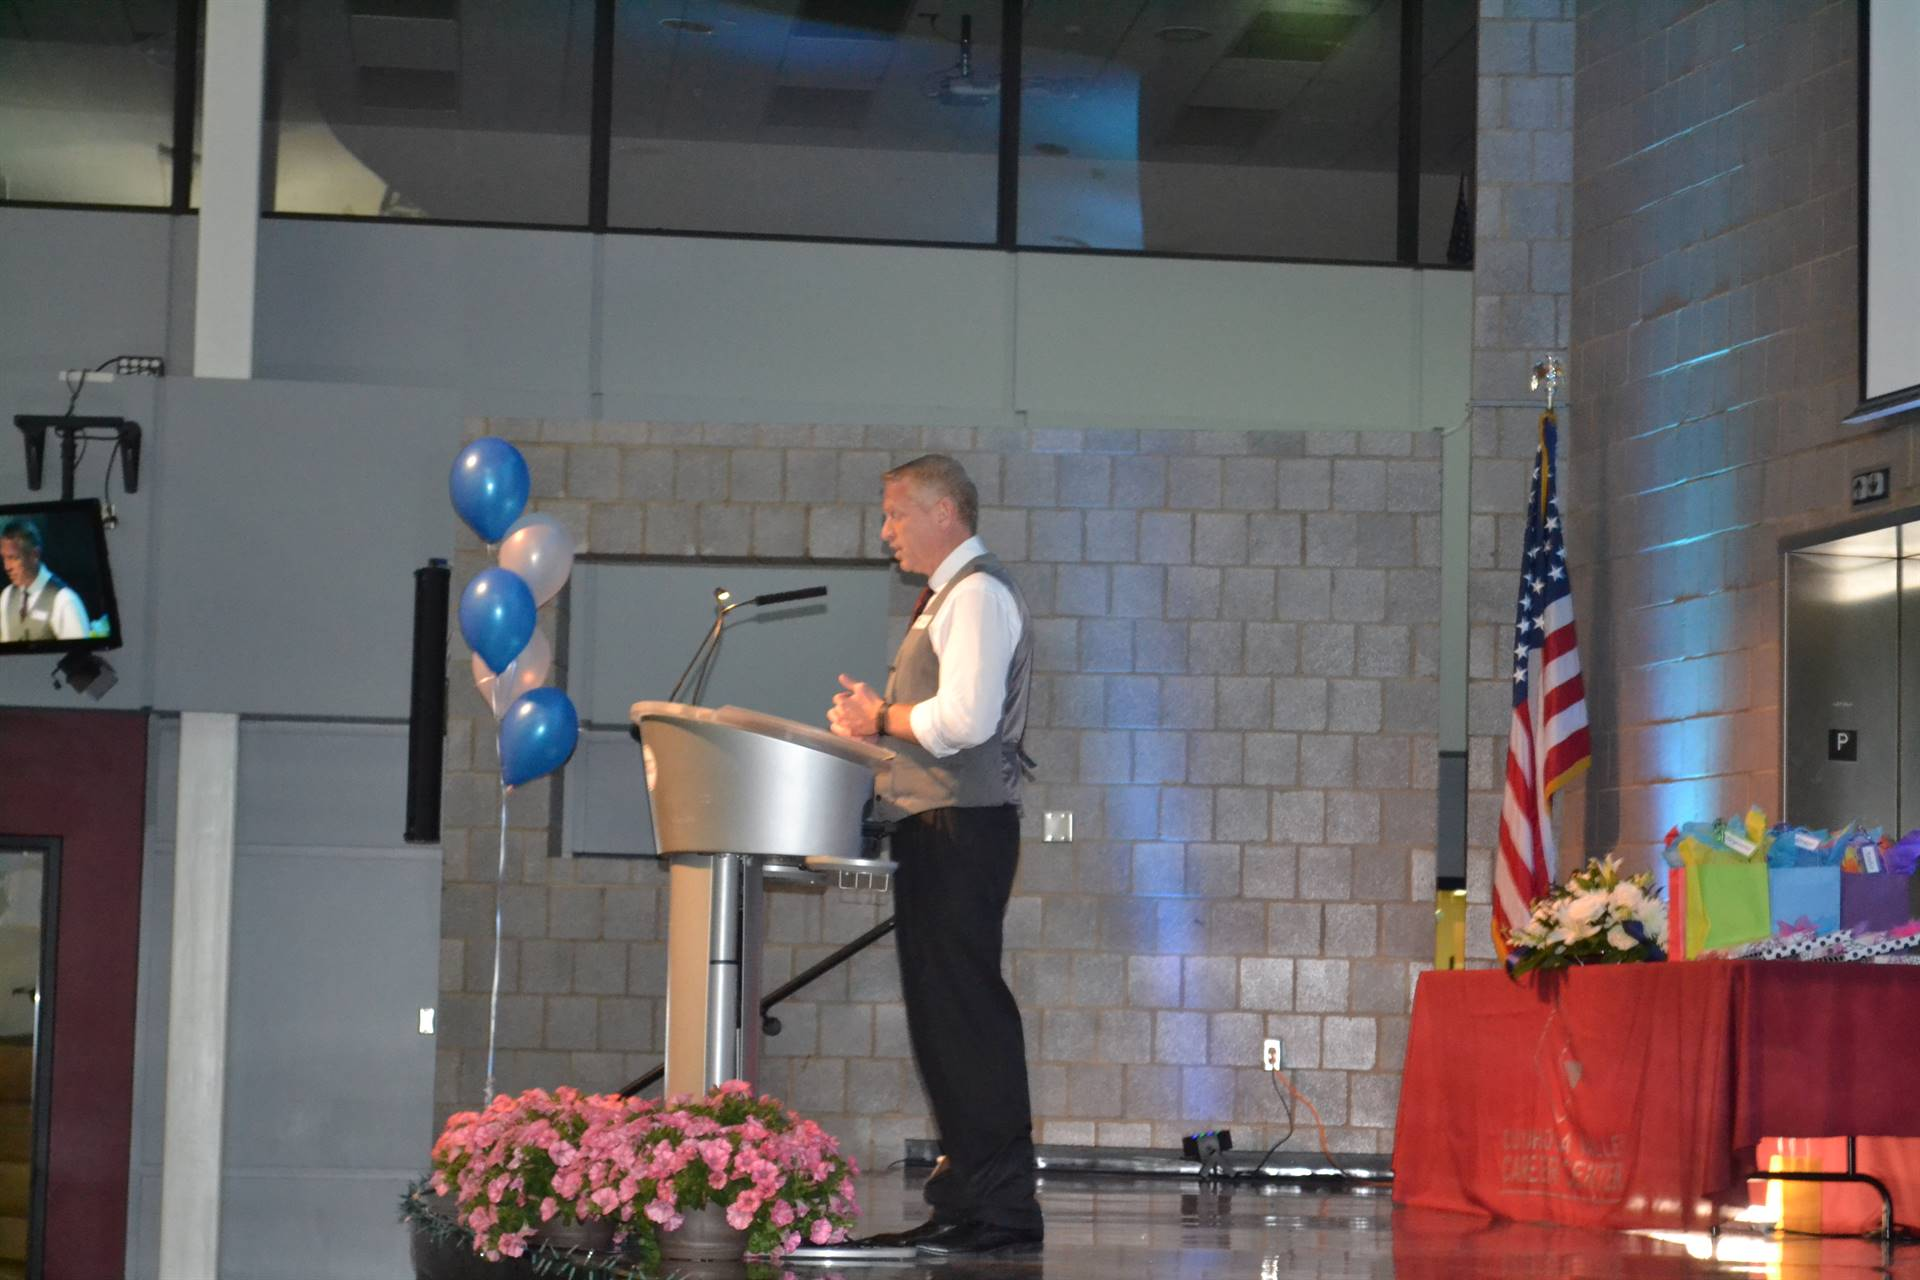 assistant principal welcomes guests